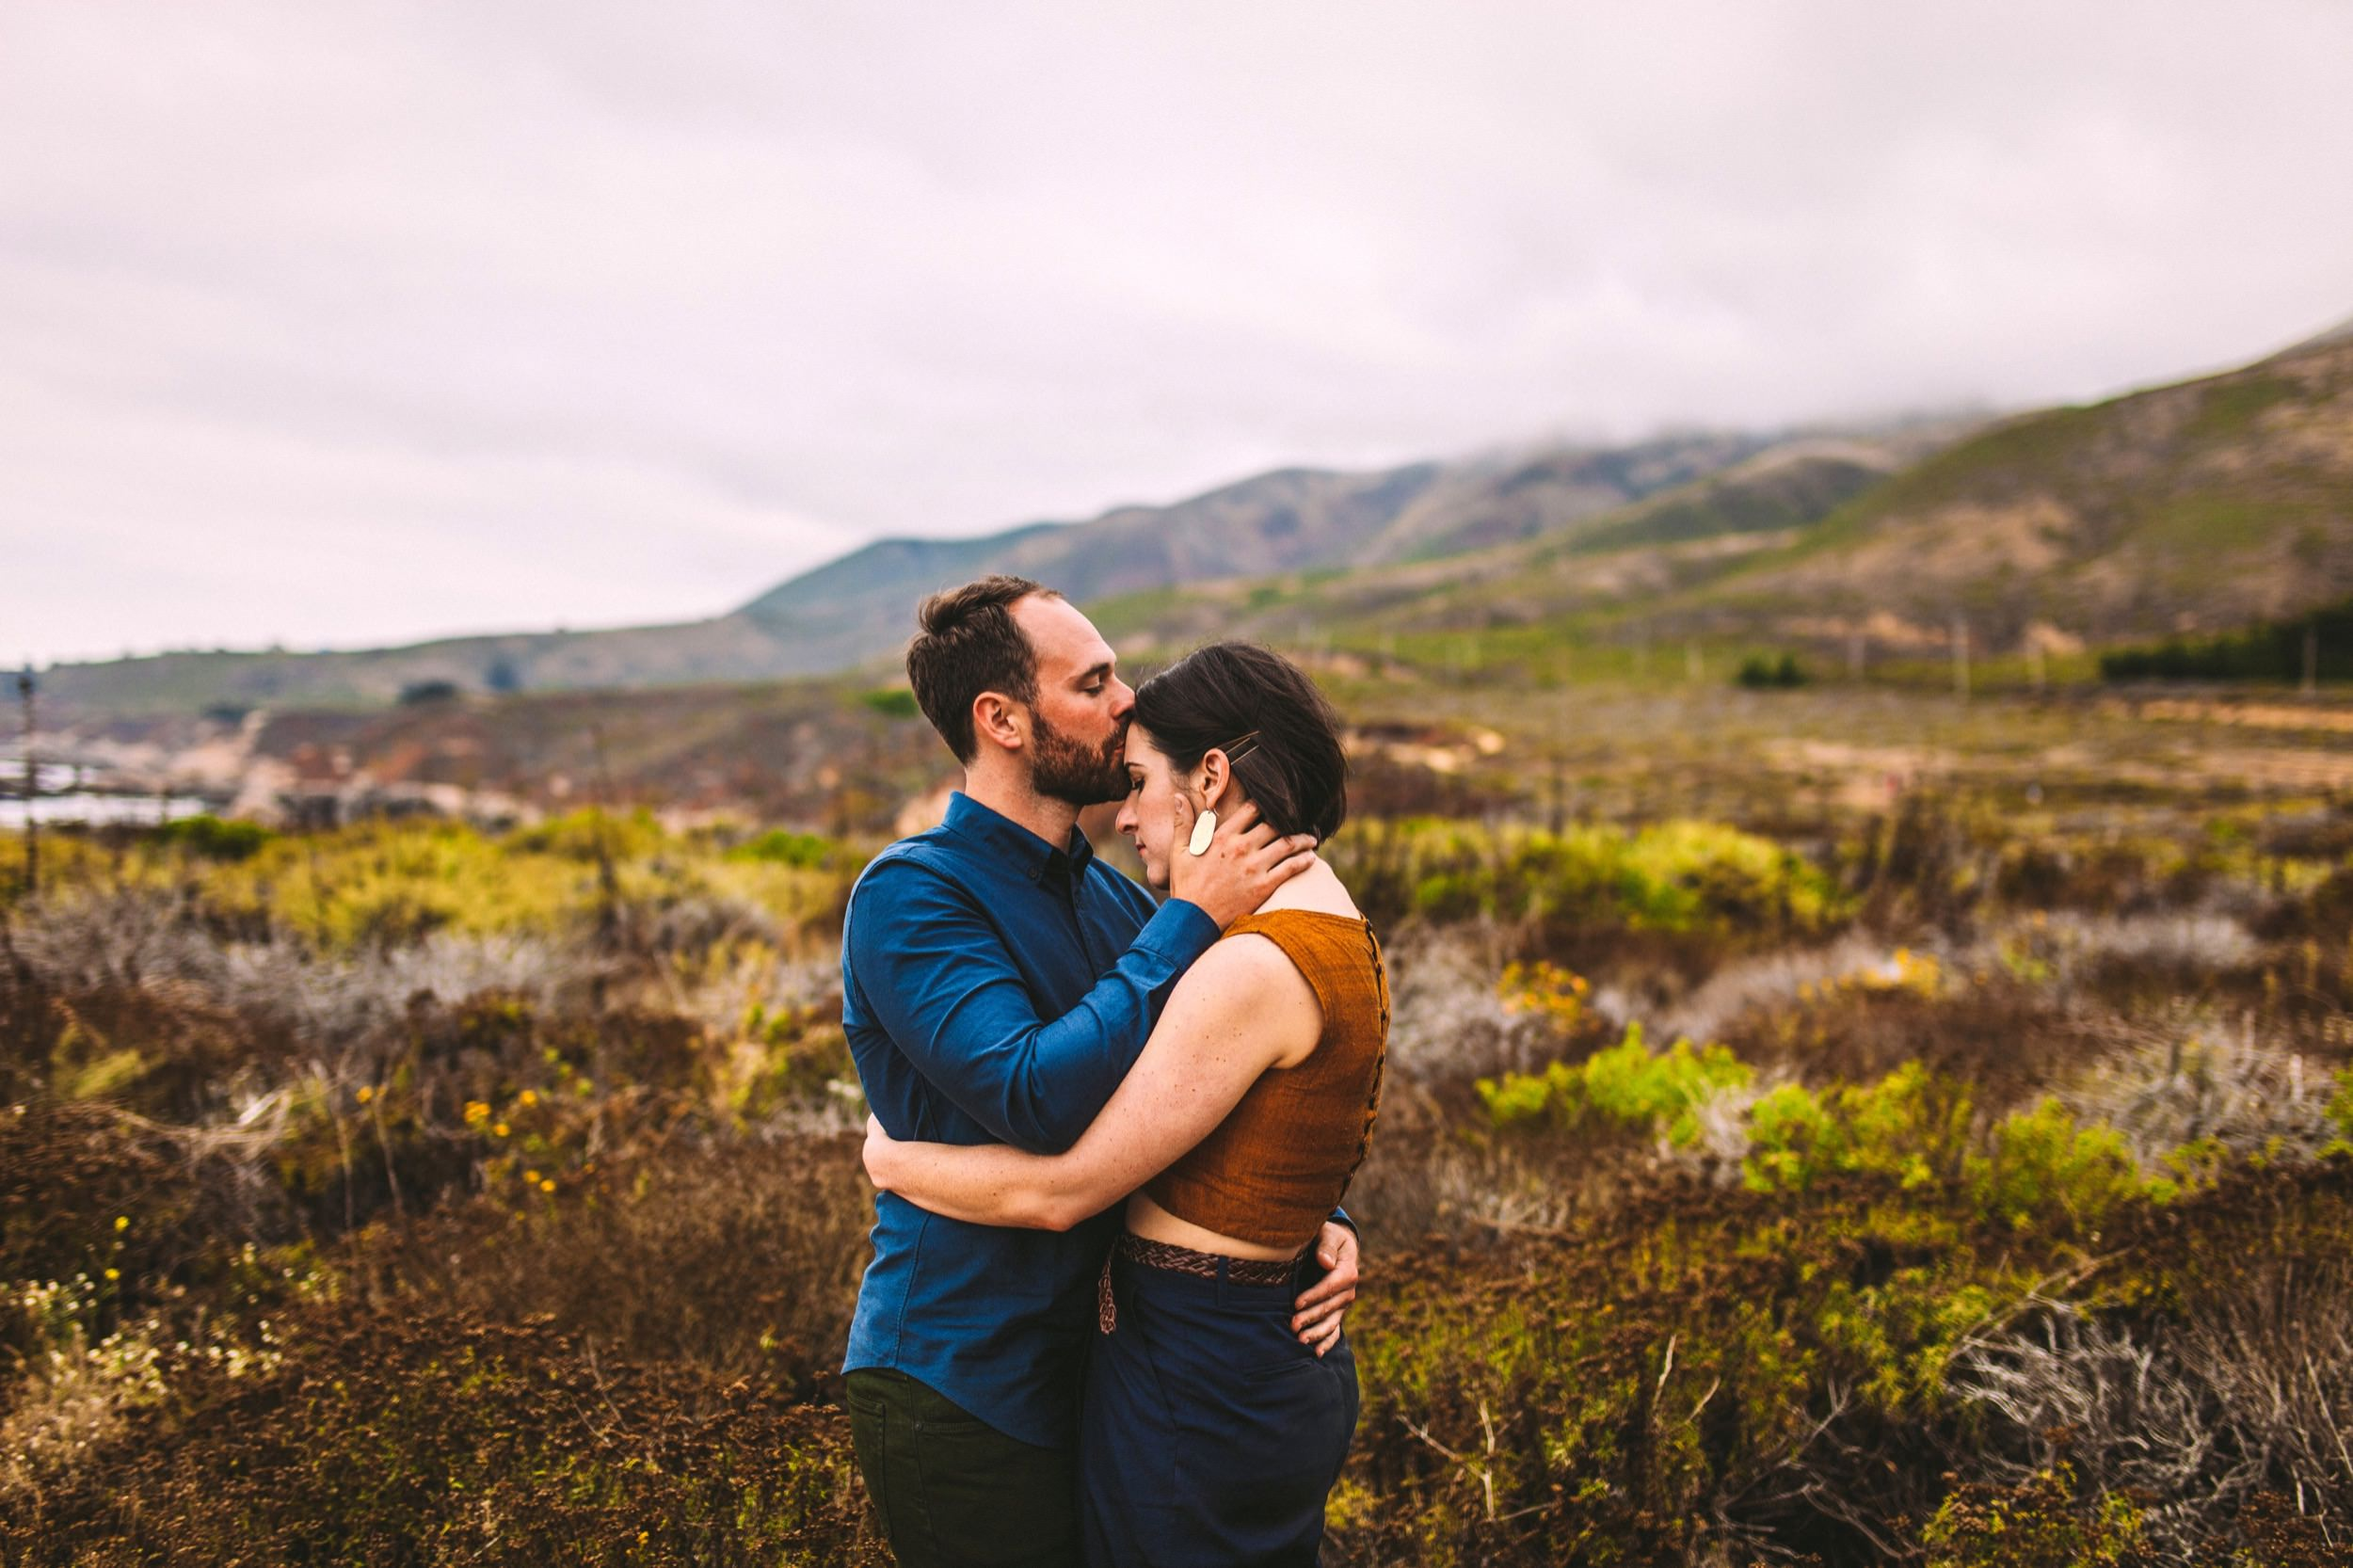 Garrapata State Park Engagement Photography Shoot-25.jpg